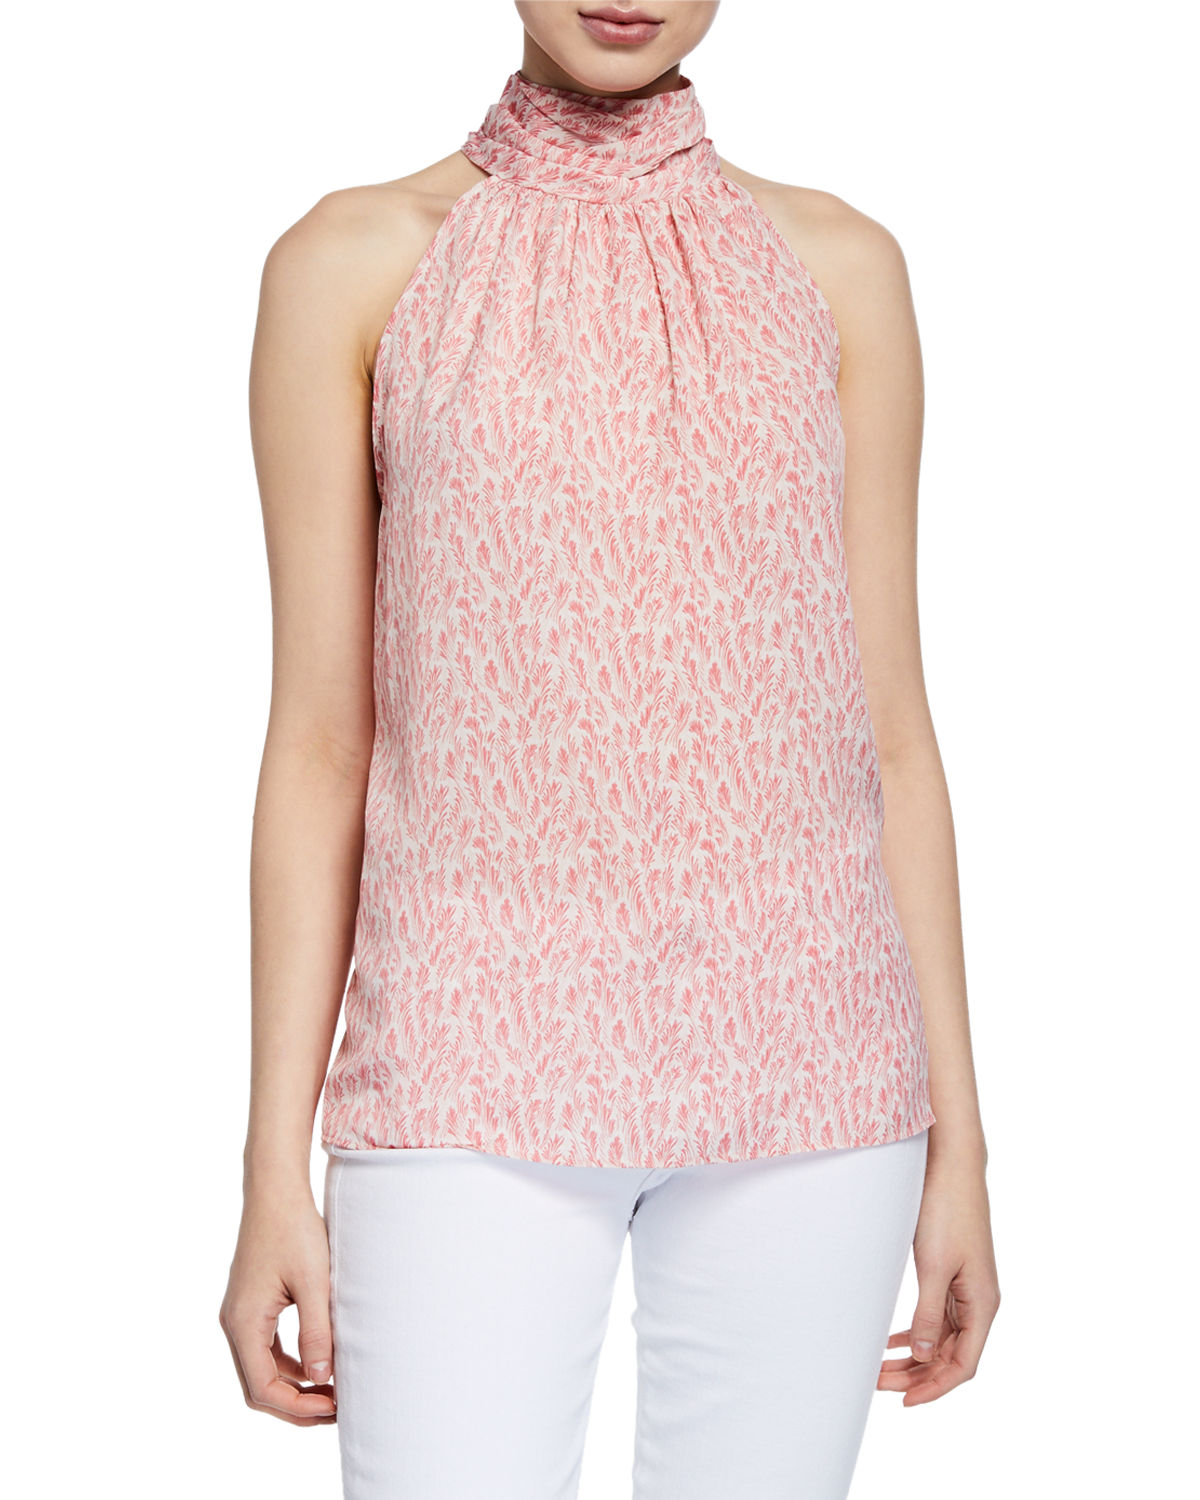 2227af9342ac6 Joie Relaxed-Fit Sleeveless Blouse In Rosebud